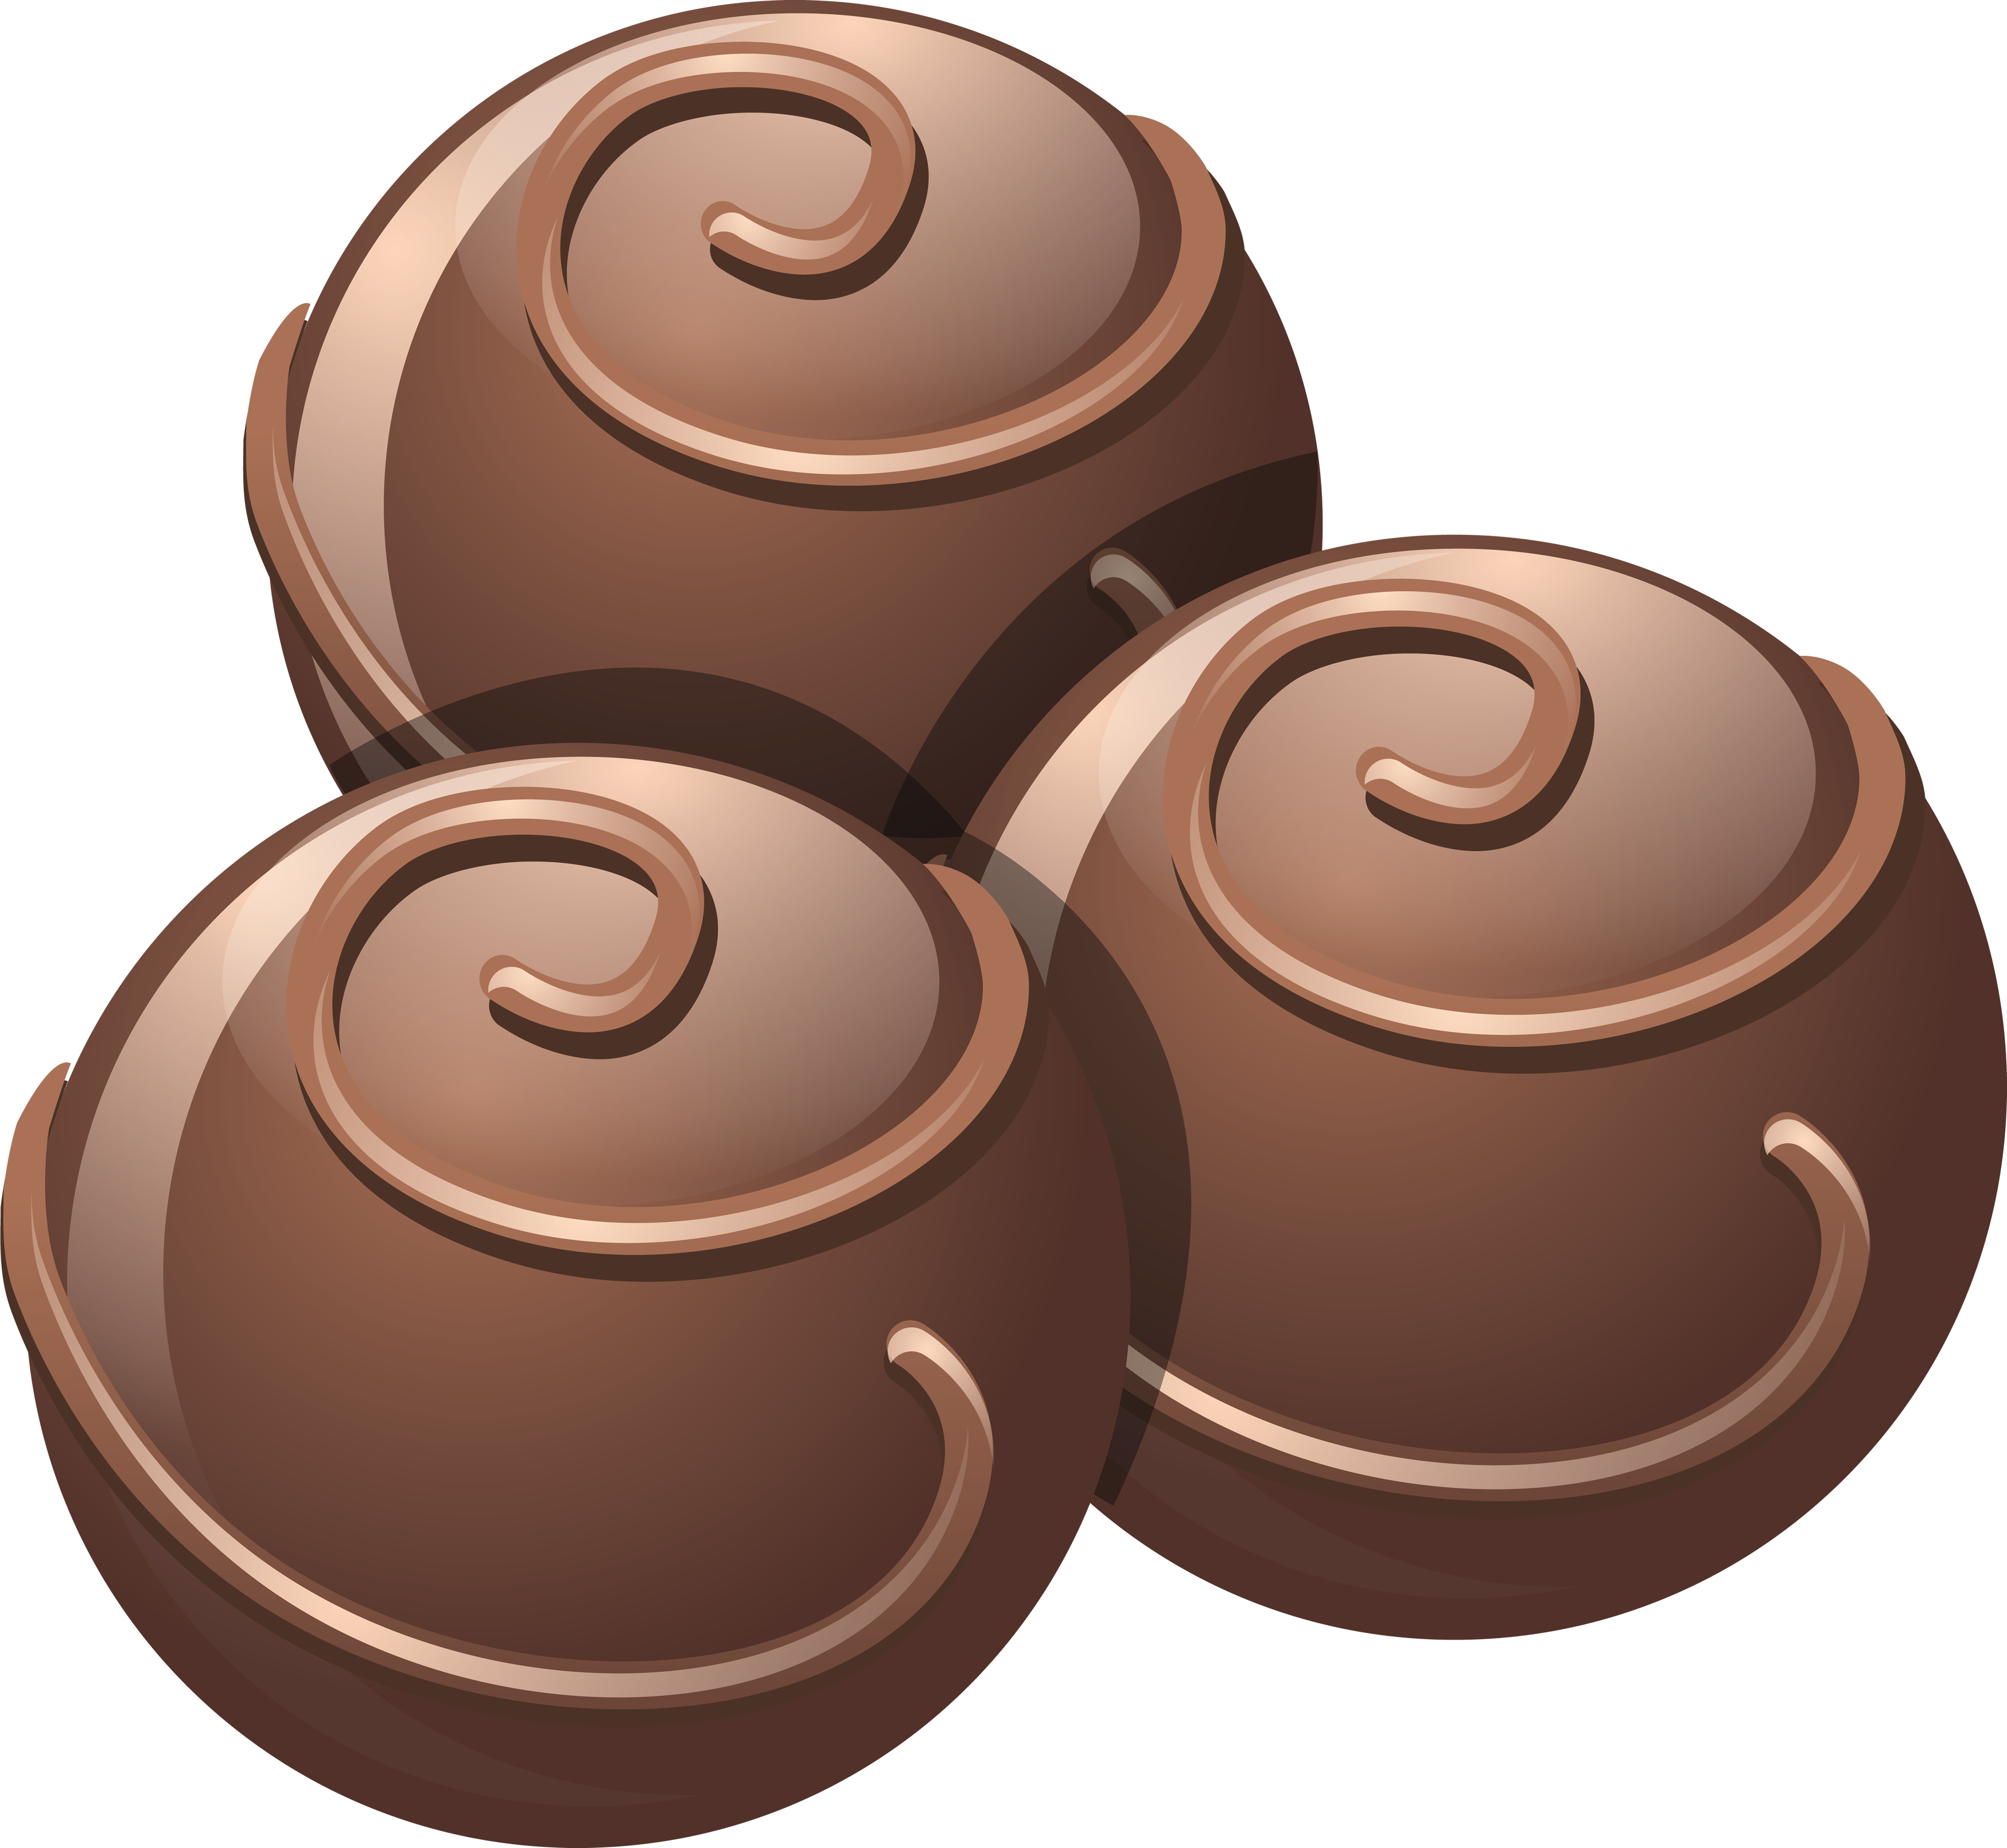 Candy Bar clipart chocolate truffle Clipart you Chocolate for cliparts